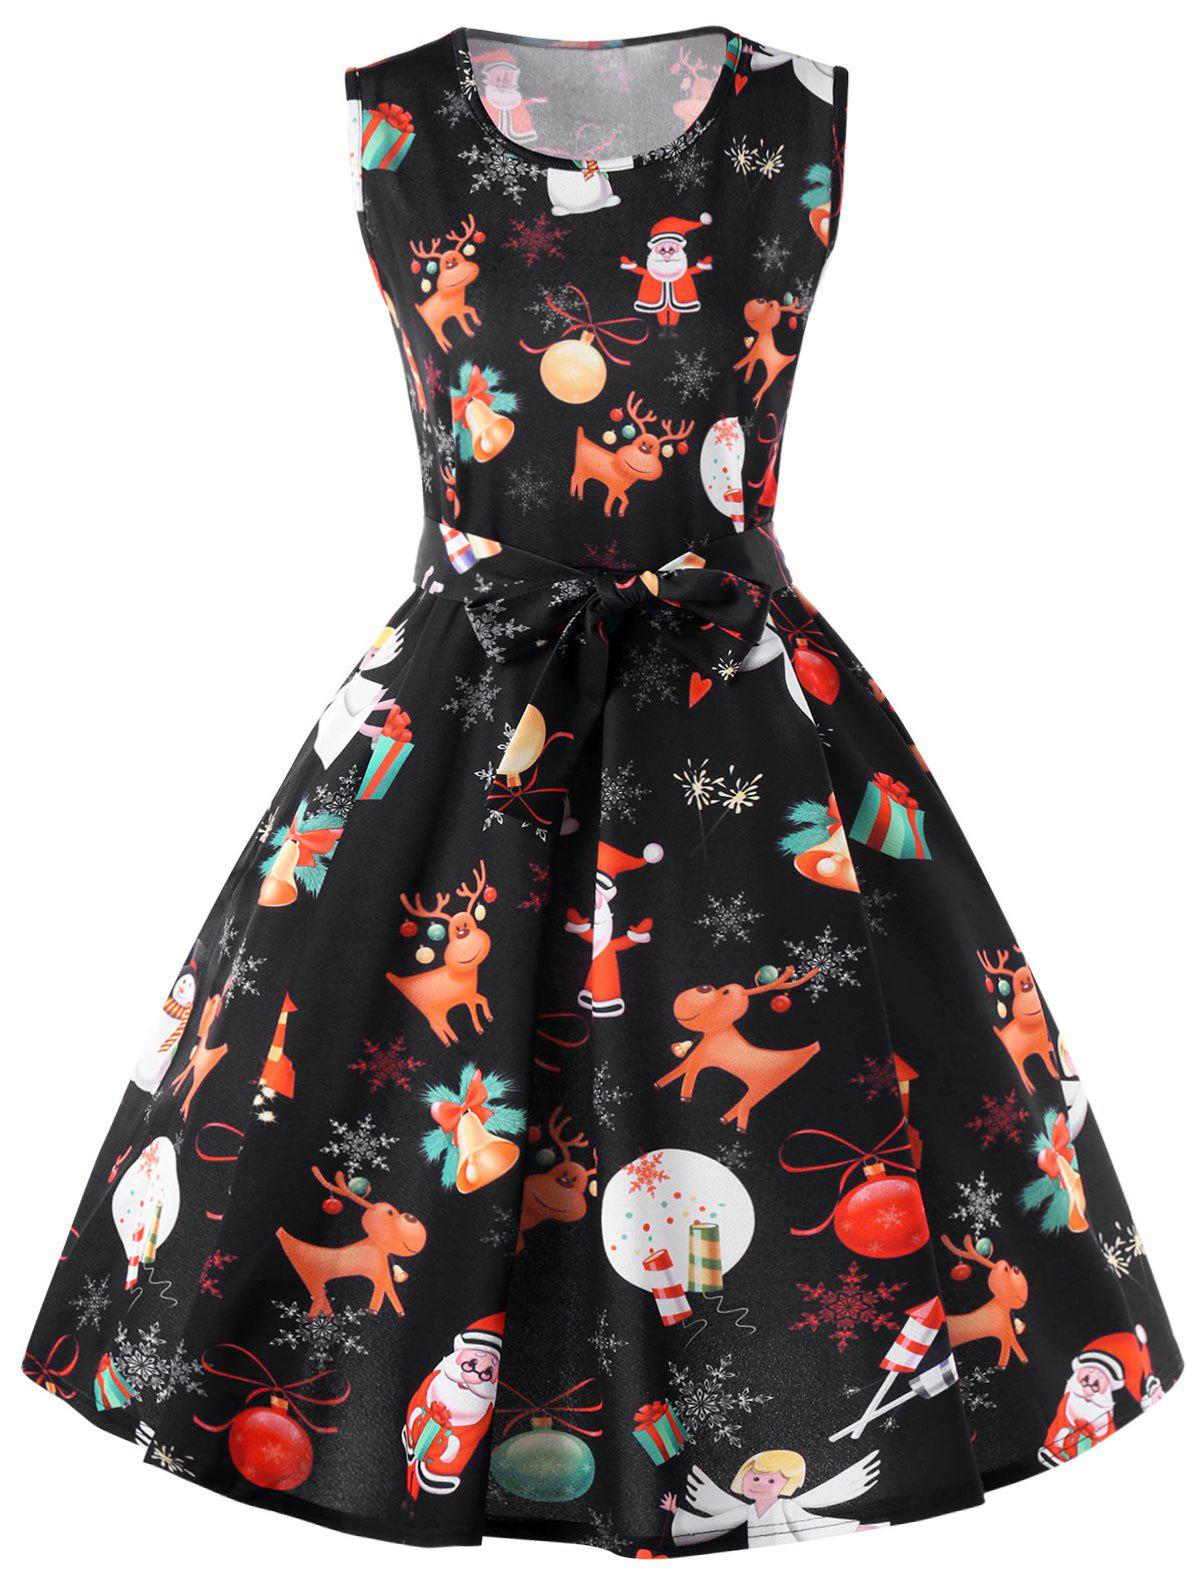 Christmas Reindeer 50s Swing Dress bup 50s bud 50s autonics new and original photo sensor 12 24vdc